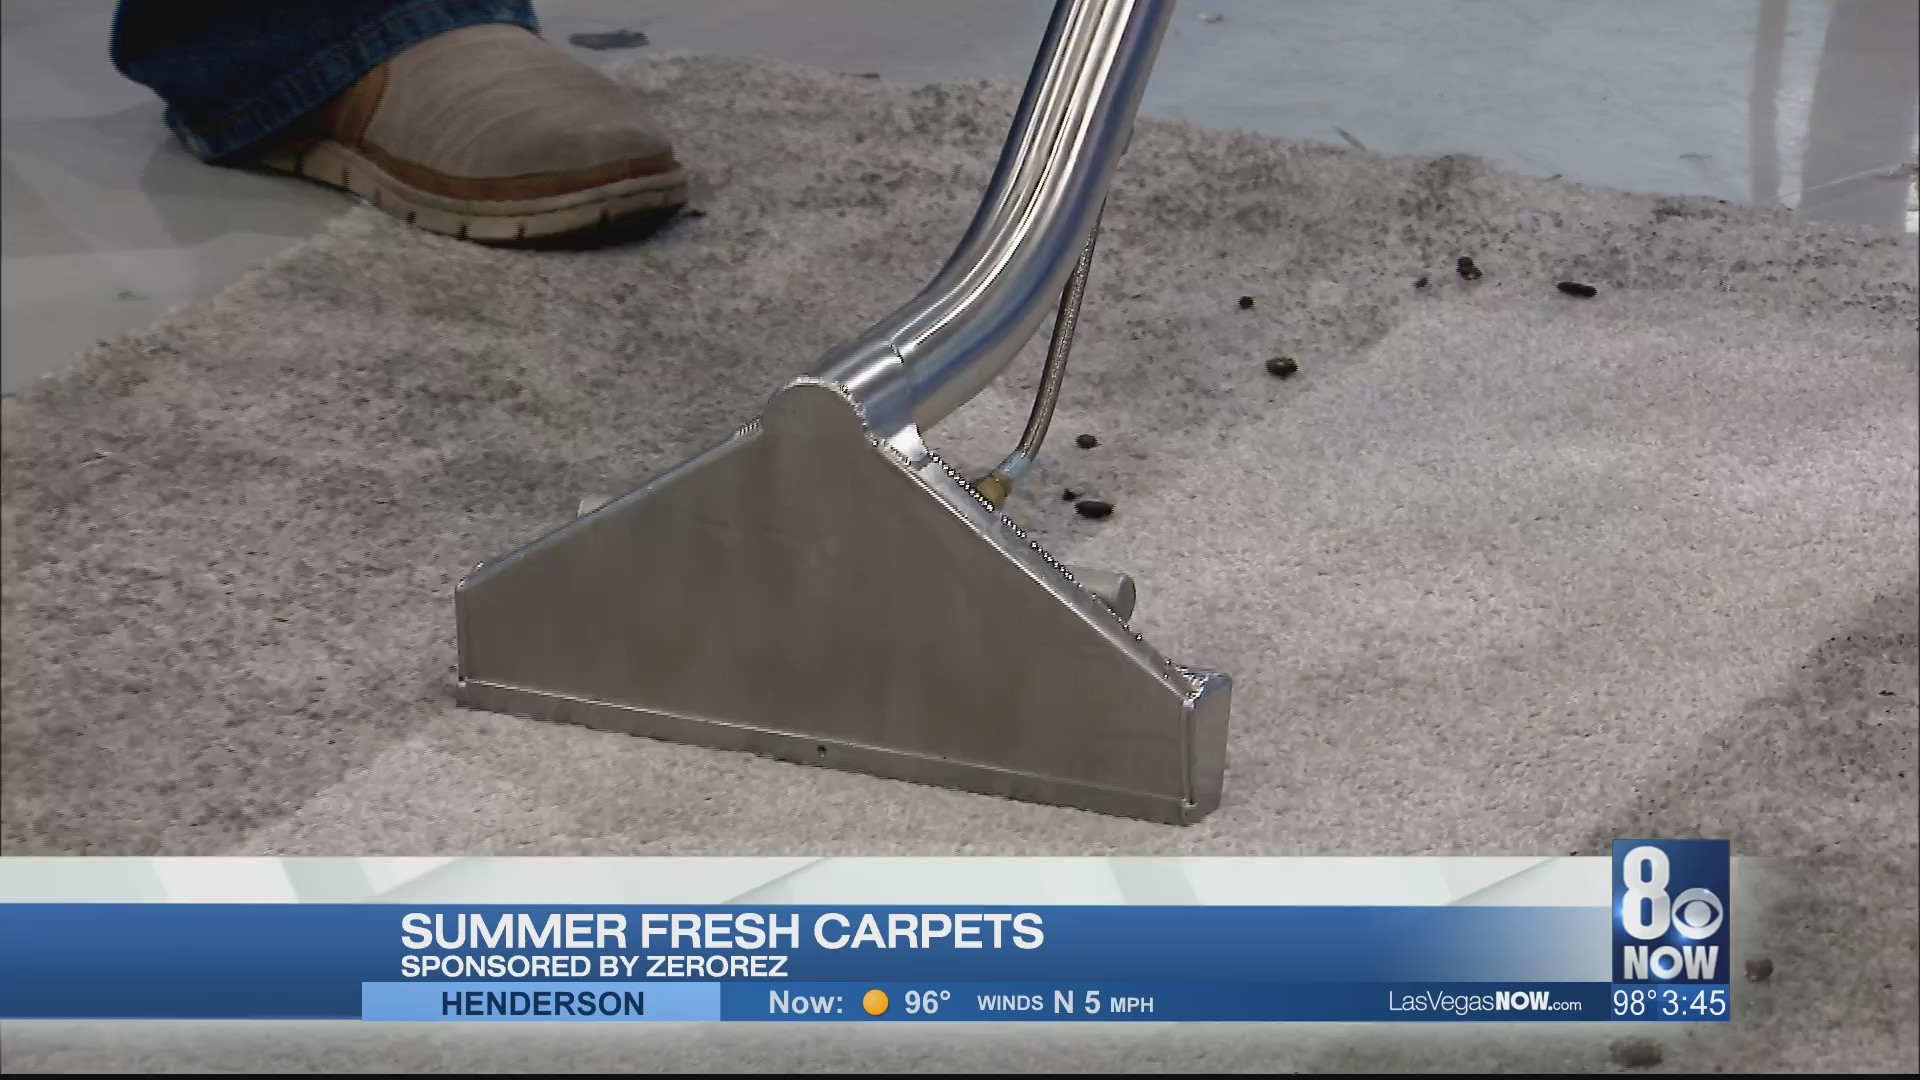 Summer fresh carpets with Zerorez